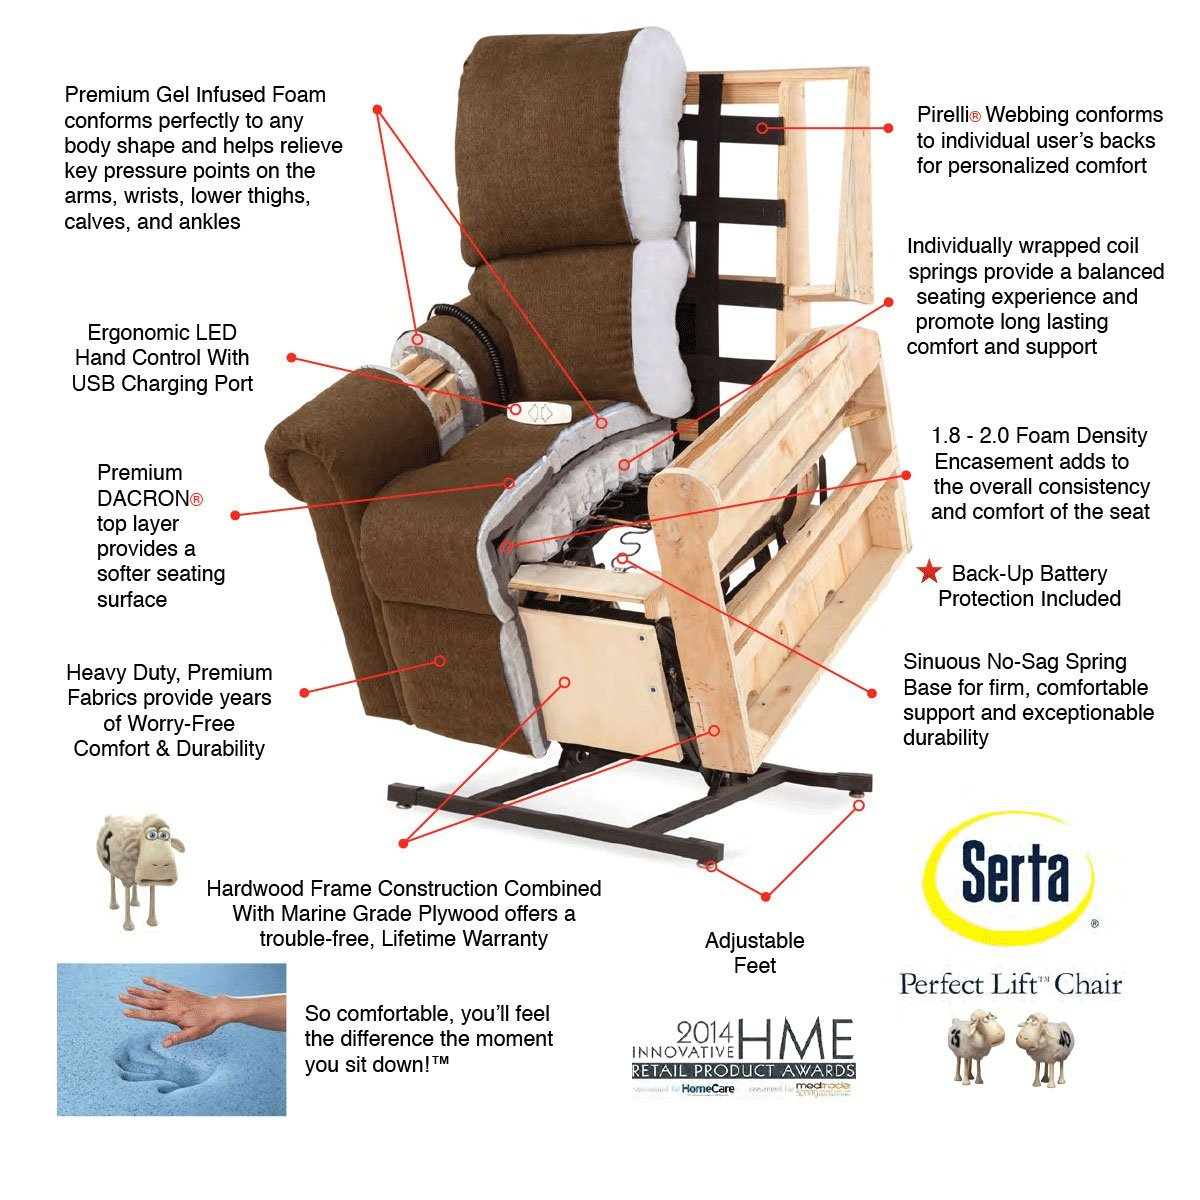 Serta Perfect Lift Chair Plush Comfort Recliner w/ Gel-Infused Foam Relieves Key Body Pressure Points  sc 1 st  The Best Recliner & Best Electric Lift Chairs For The Elderly - The Best Recliner islam-shia.org